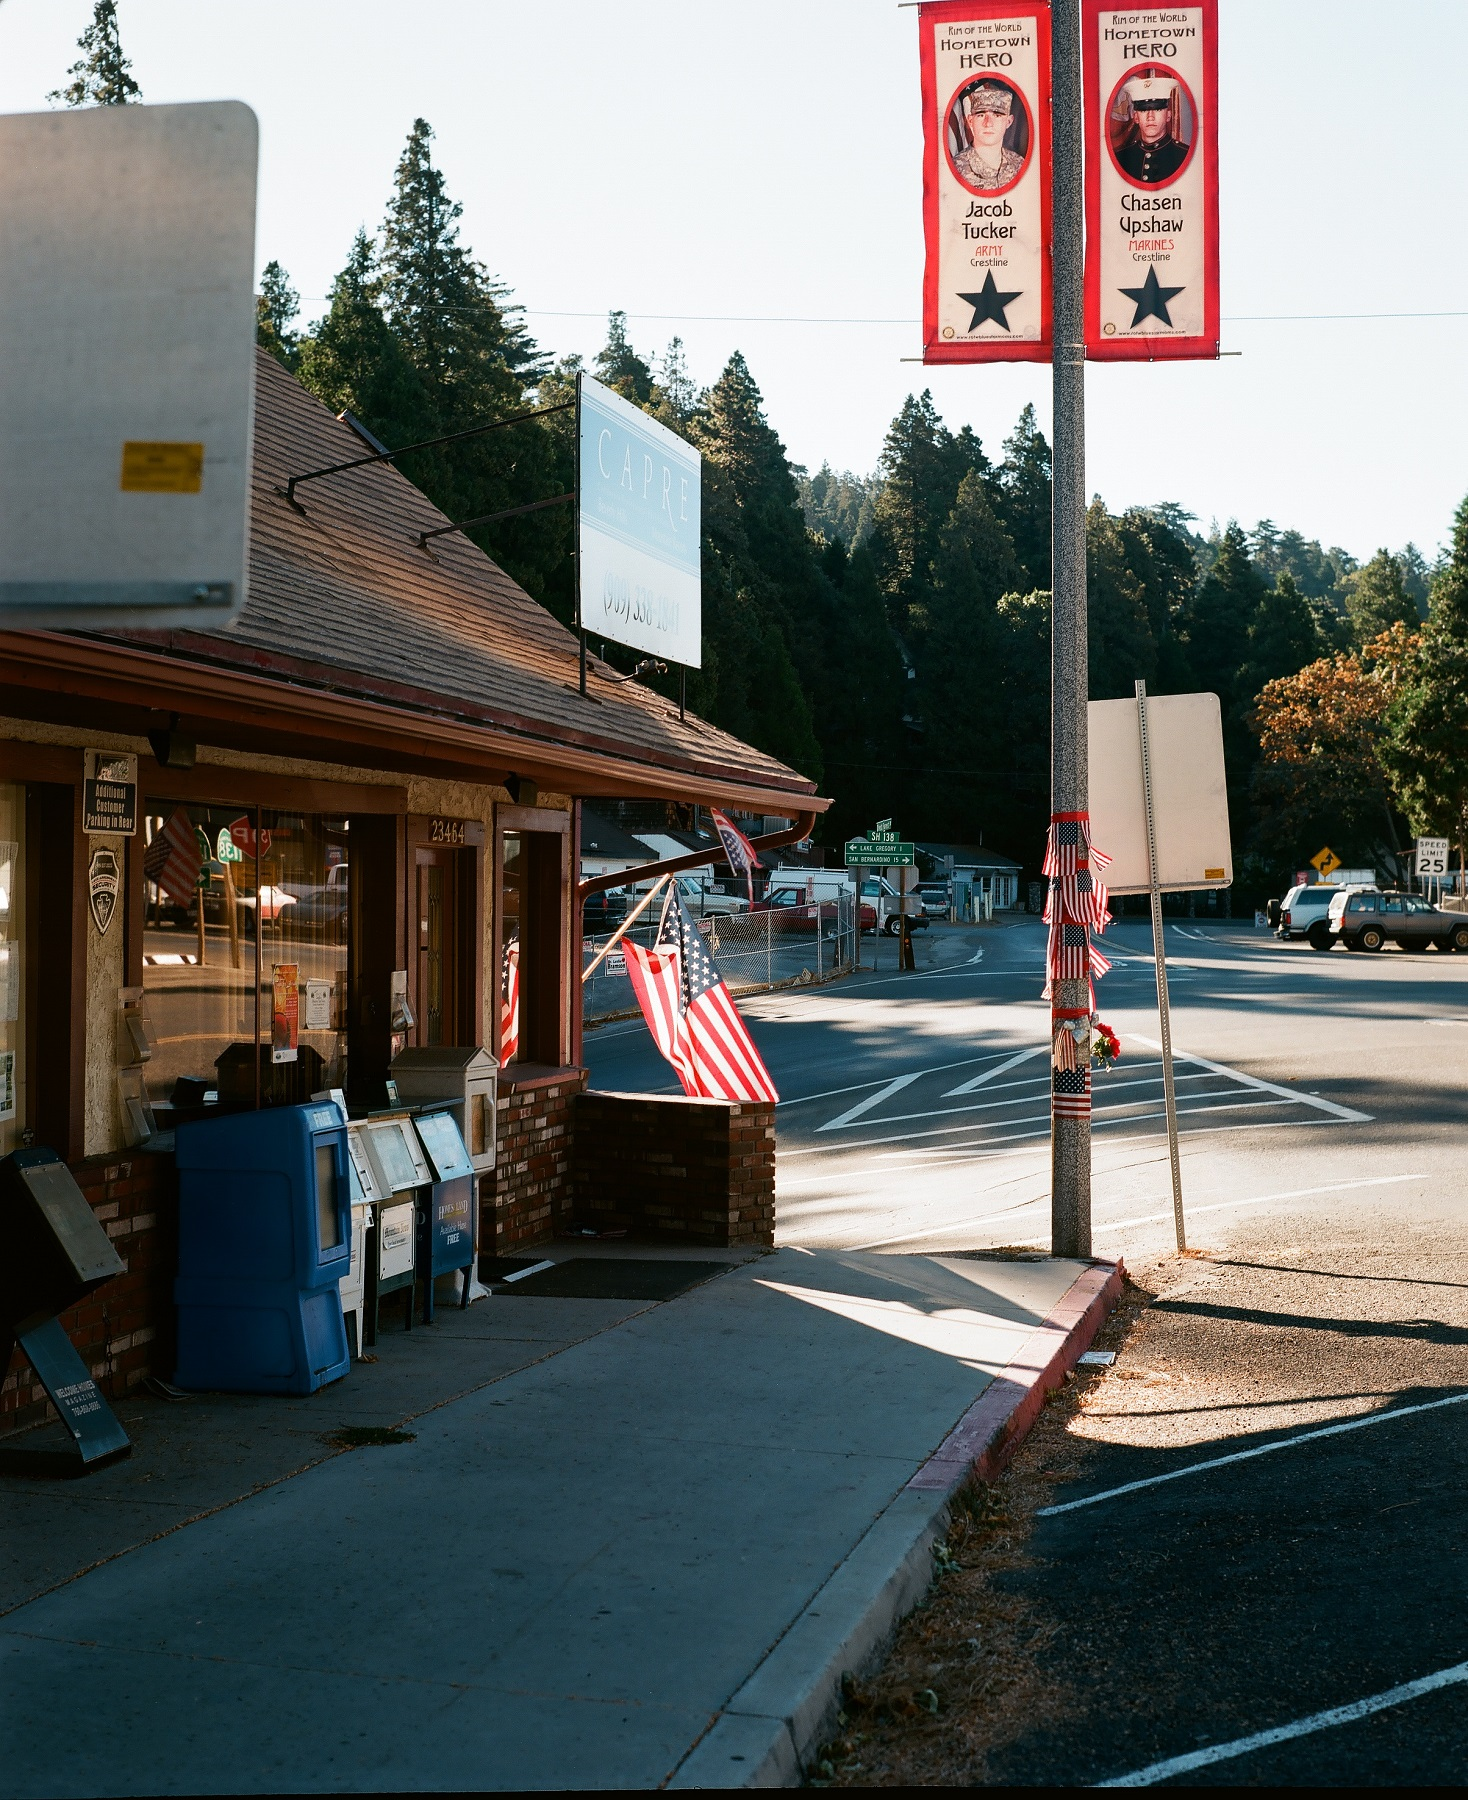 Crestline, California_Mamiya Super 23, 3.5f=100m_Kyle Everett Smith_3.jpg